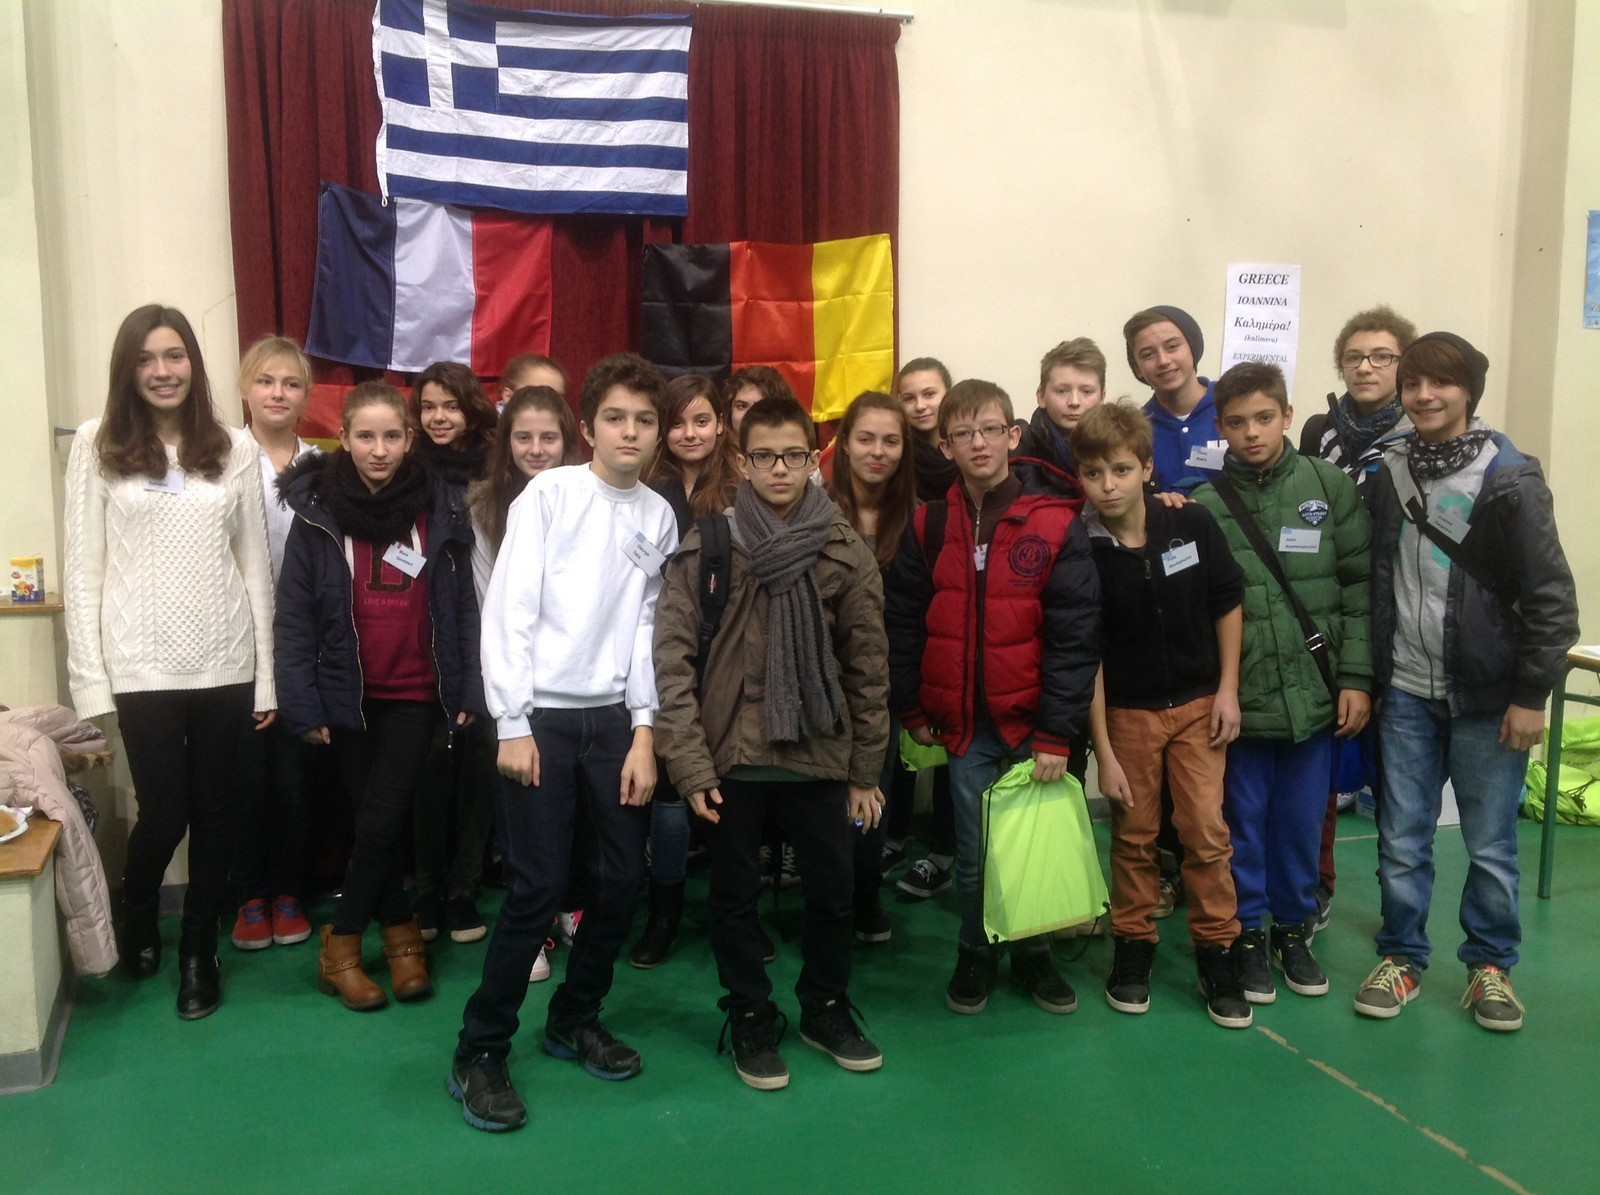 http://www4.ac-nancy-metz.fr/clg-pergaud-chatel-sur-moselle/site/wp-content/uploads/IMG_0128-e1422032093583.jpg